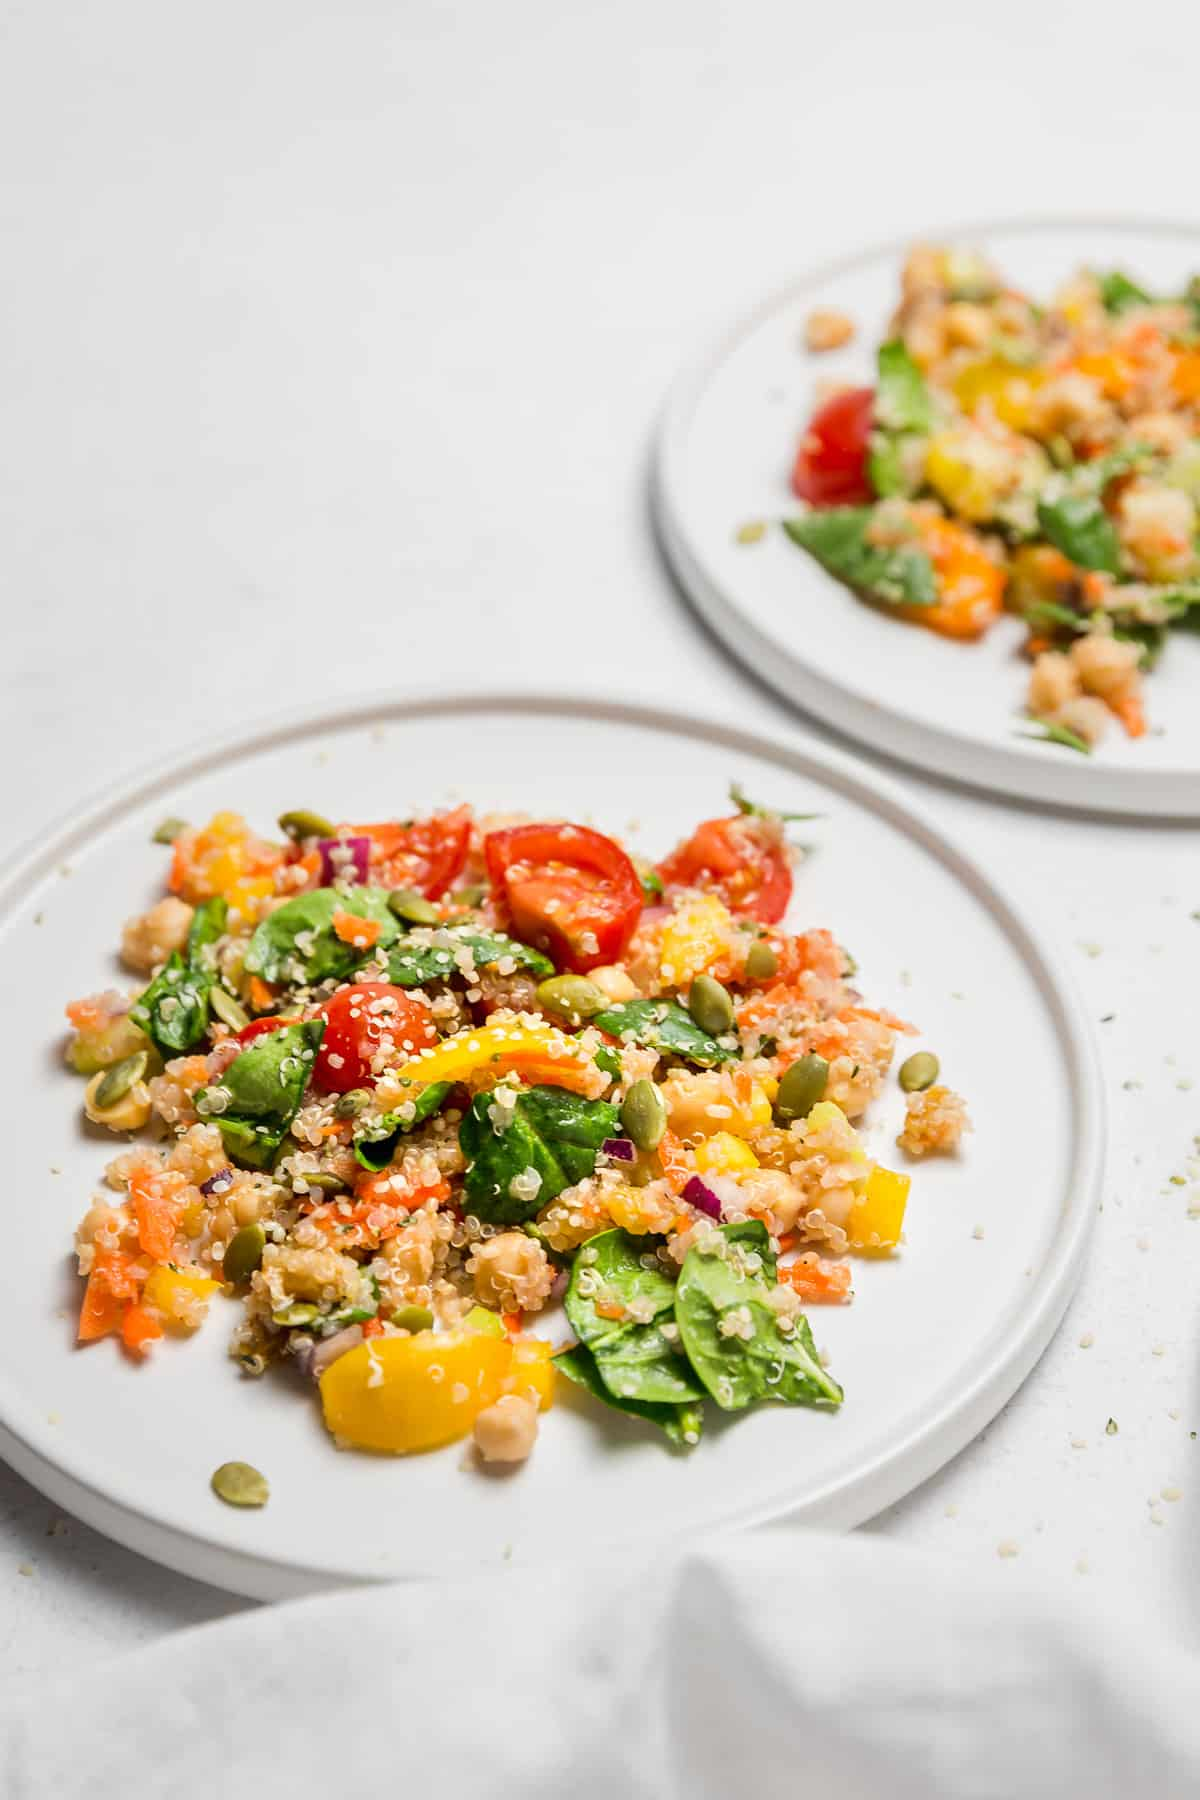 Simple Veggie Quinoa Salad, plant based, vegan, vegetarian, whole food plant based, gluten free, recipe, wfpb, healthy, healthy vegan, oil free, no refined sugar, no oil, refined sugar free, dairy free, dinner party, entertaining, salad, side, lunch, dinner